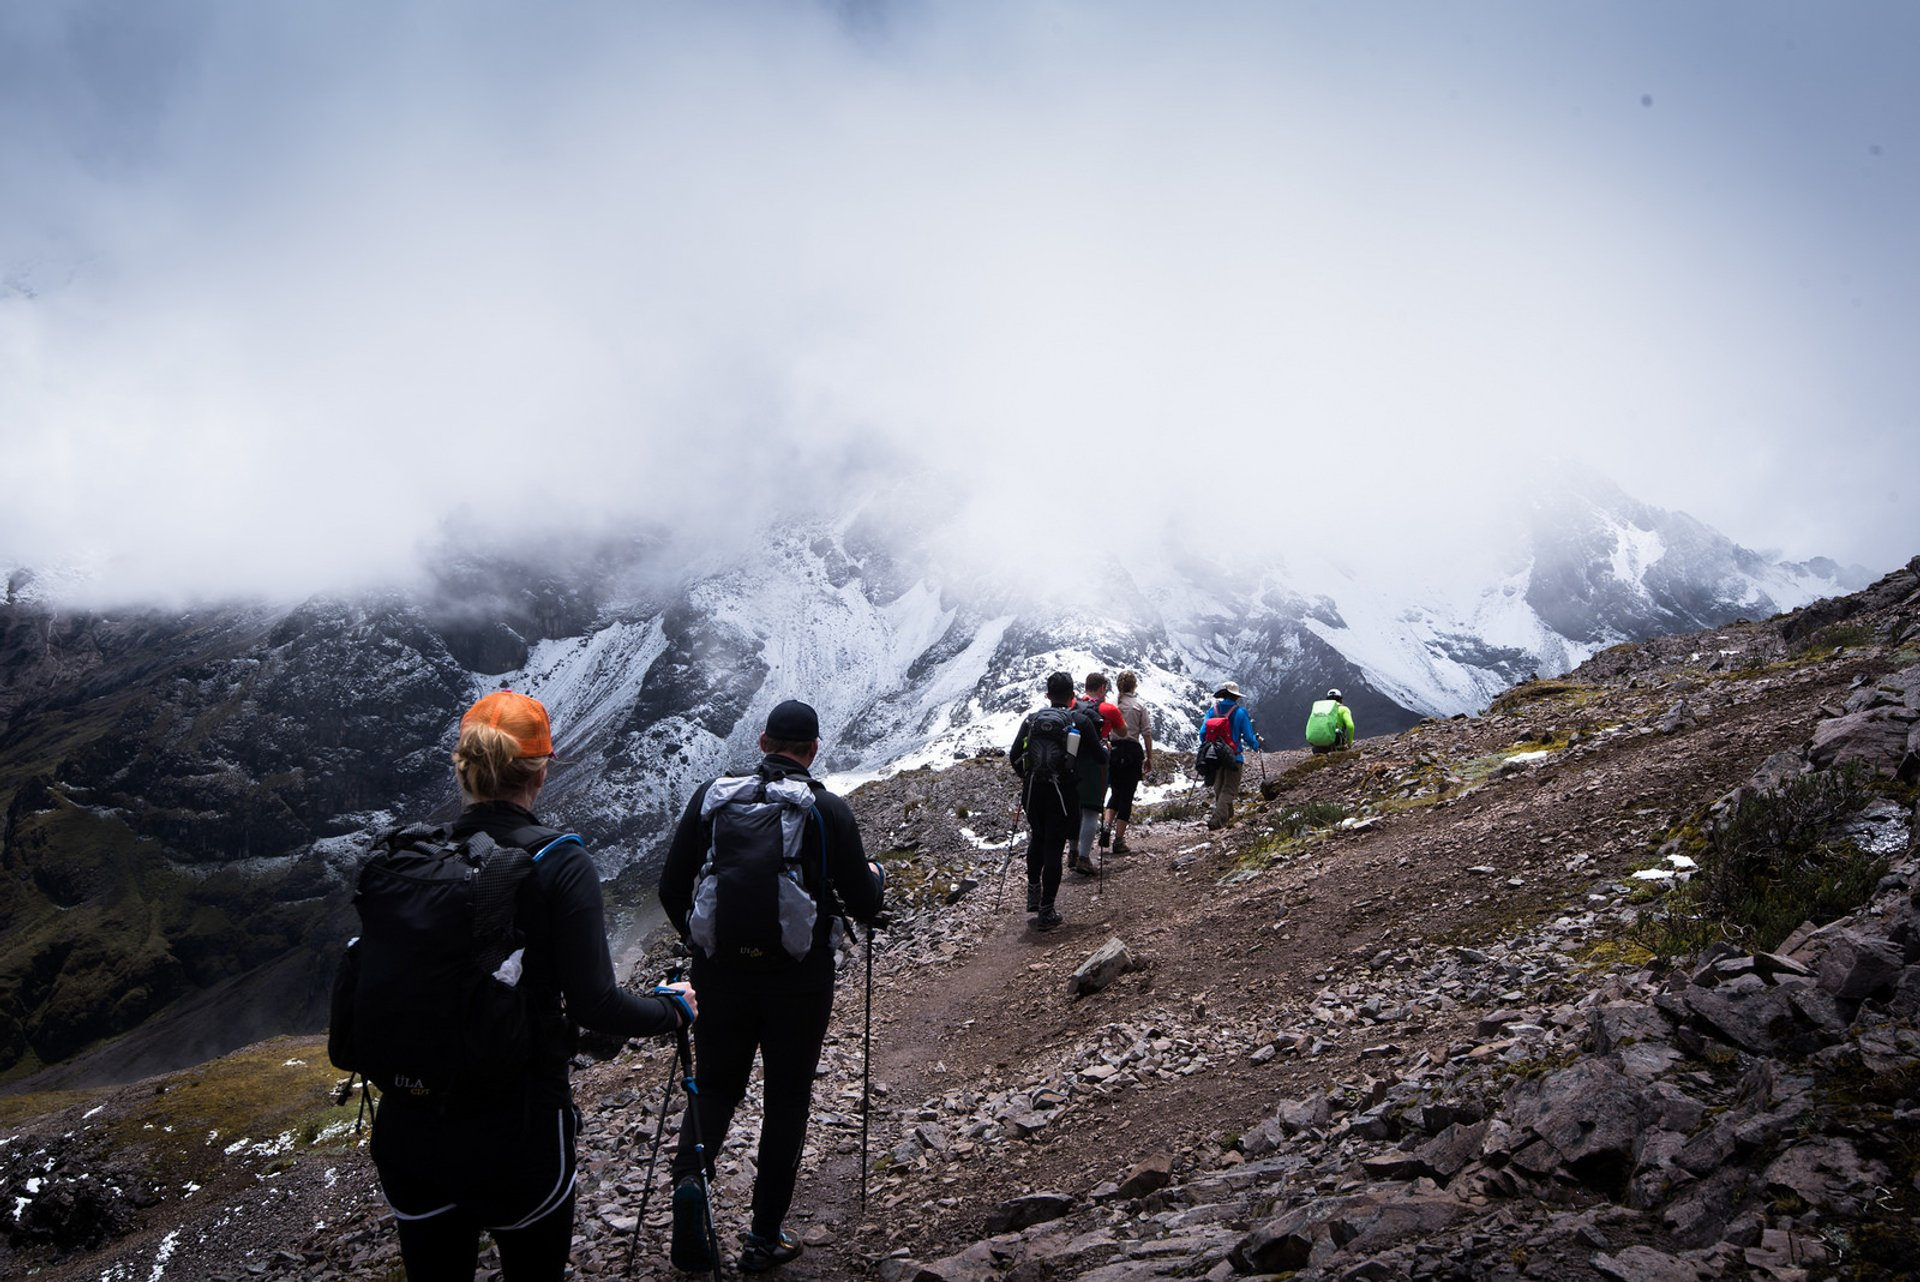 Rainy Season Trekking in Peru 2020 - Best Time